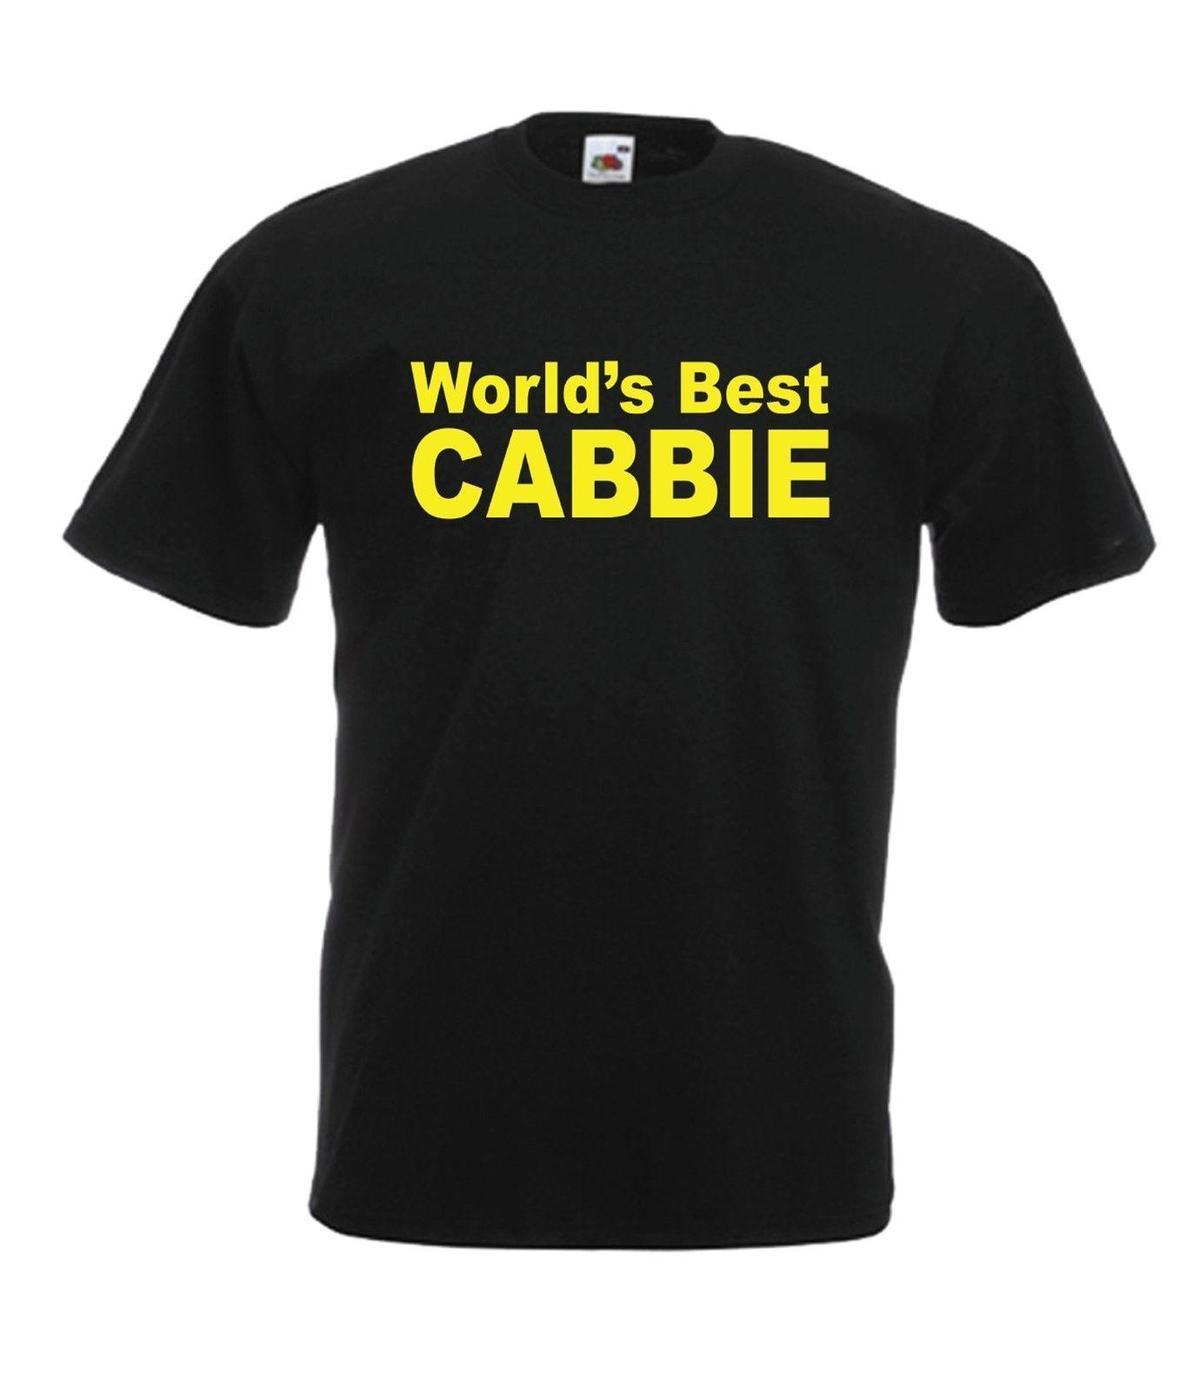 WORLDS BEST CABBIE Taxi Driver Christmas Birthday Gift Ideas Mens Womens T SHIRT Shirt Of The Day Buy Tshirts From Liguo01 1208